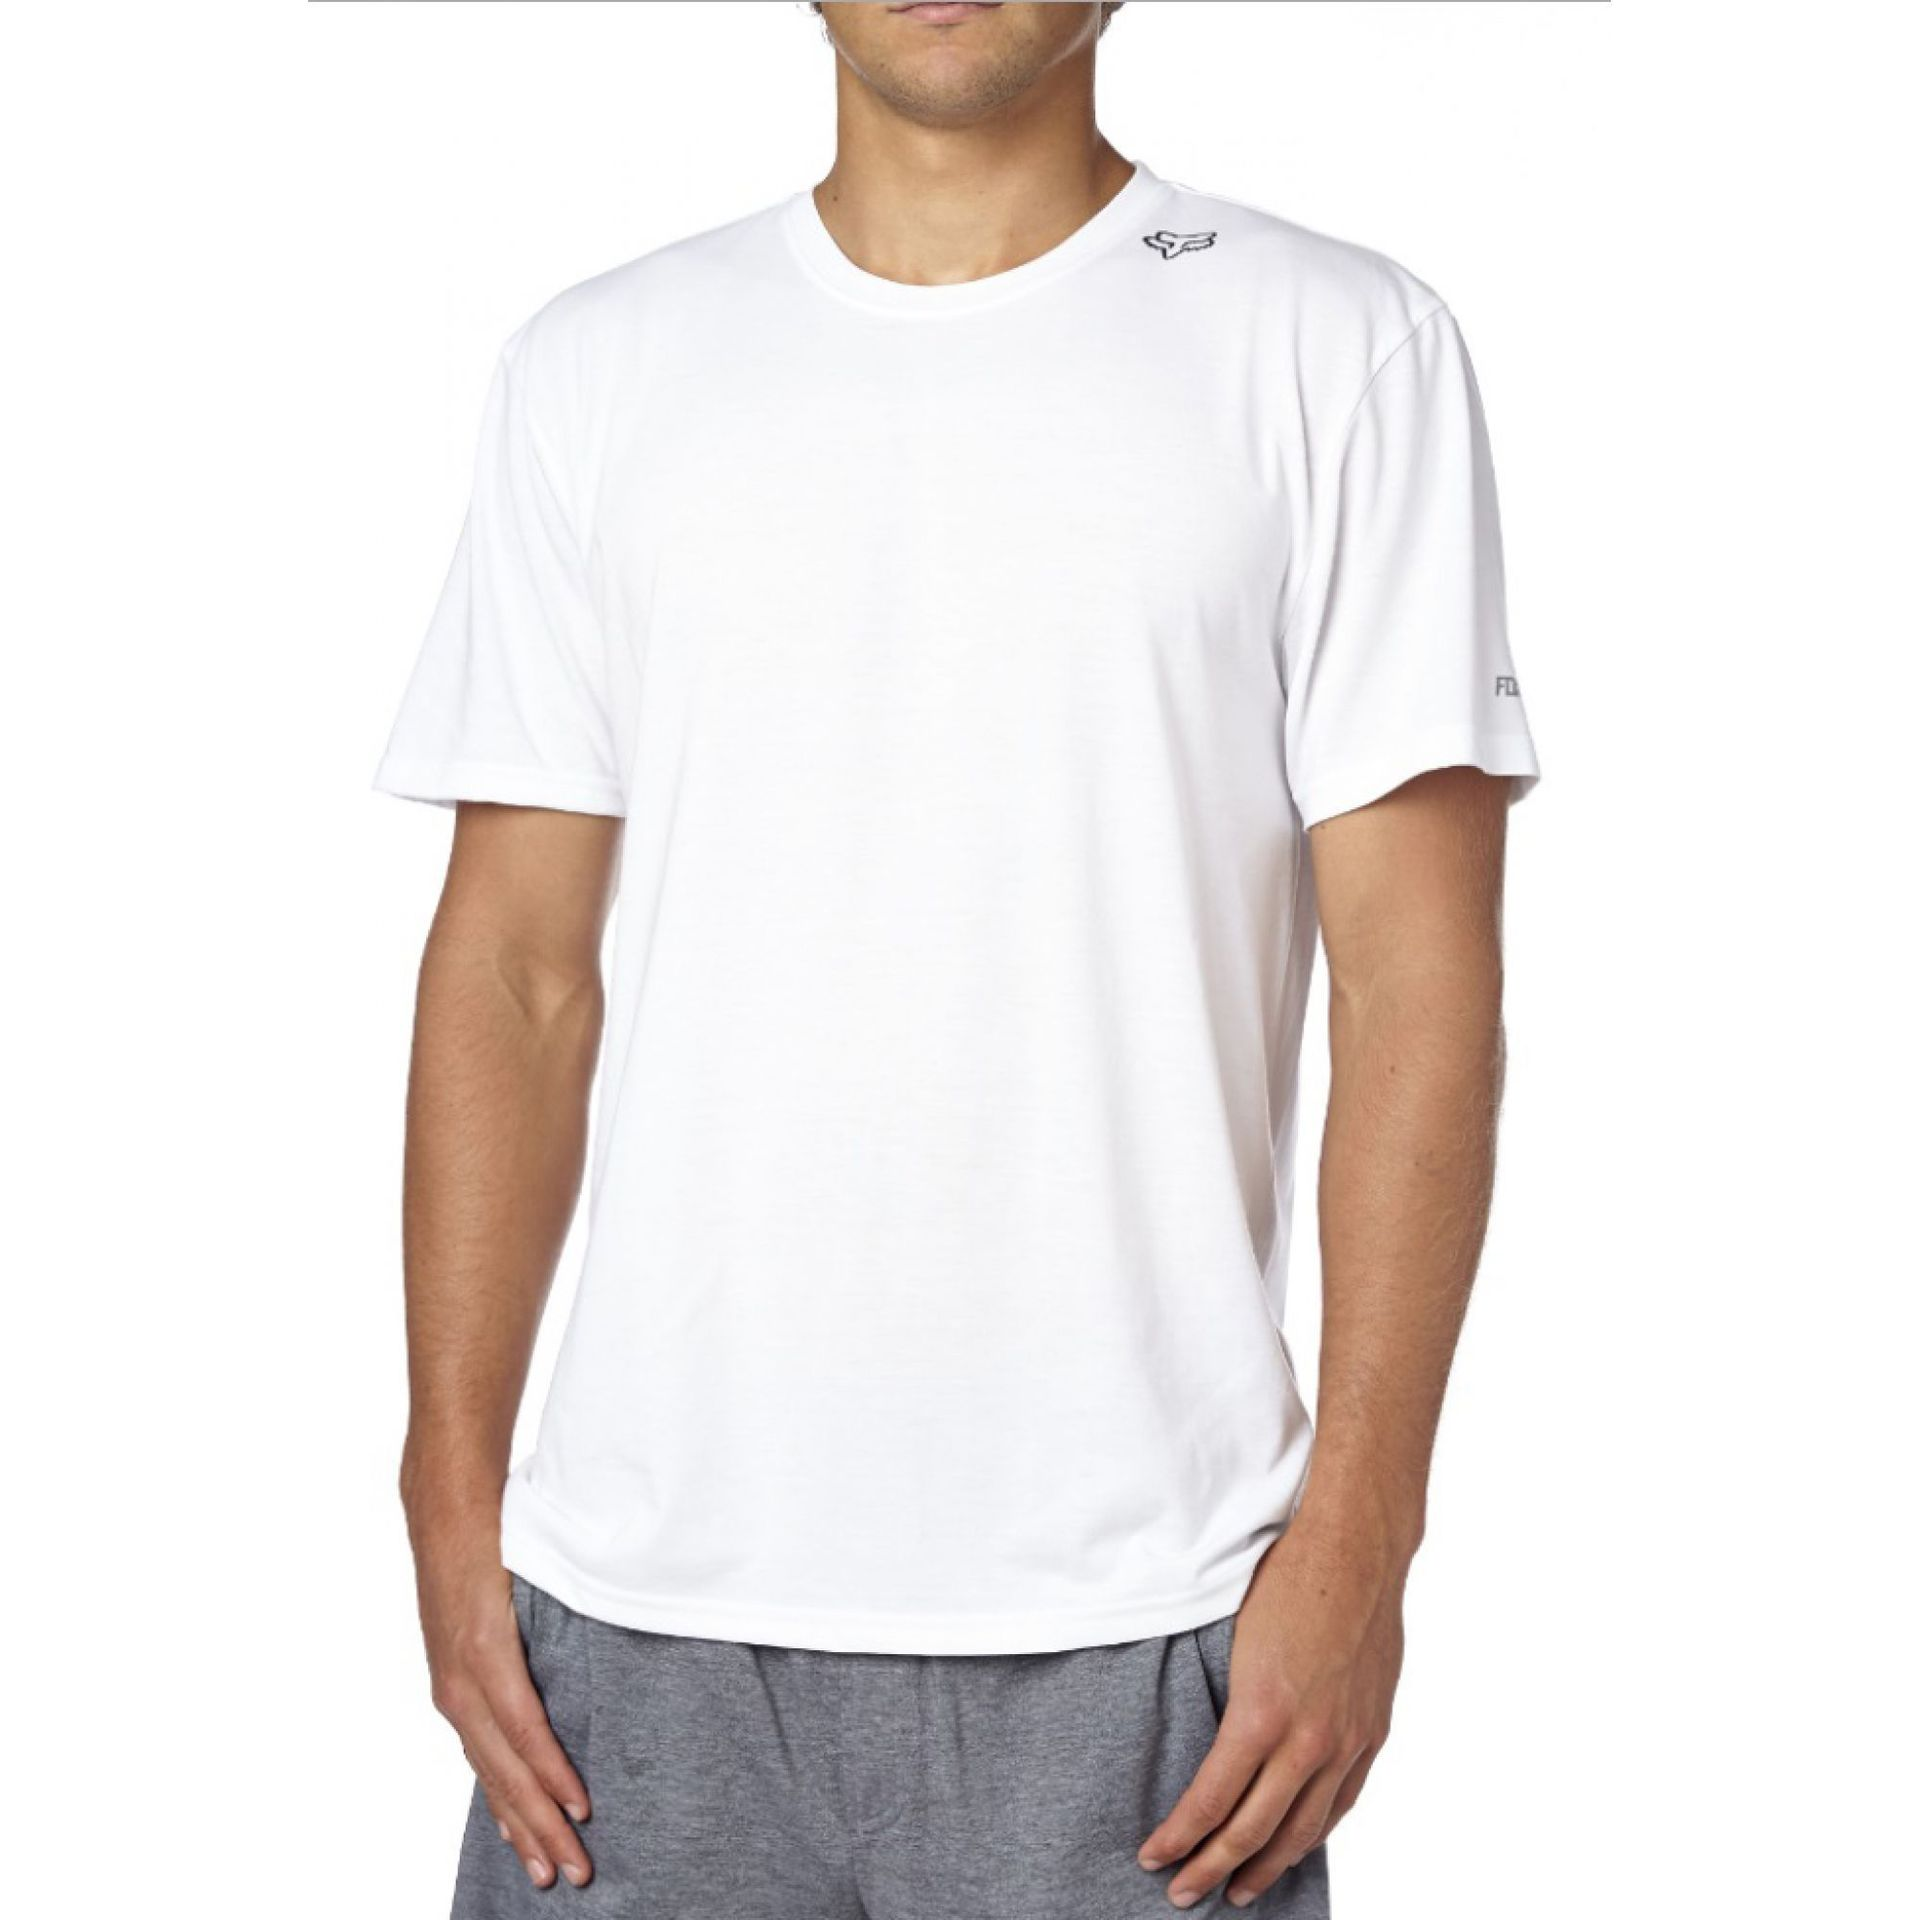 T-SHIRT FOXHEAD FLIP SHOT OPTIC WHITE